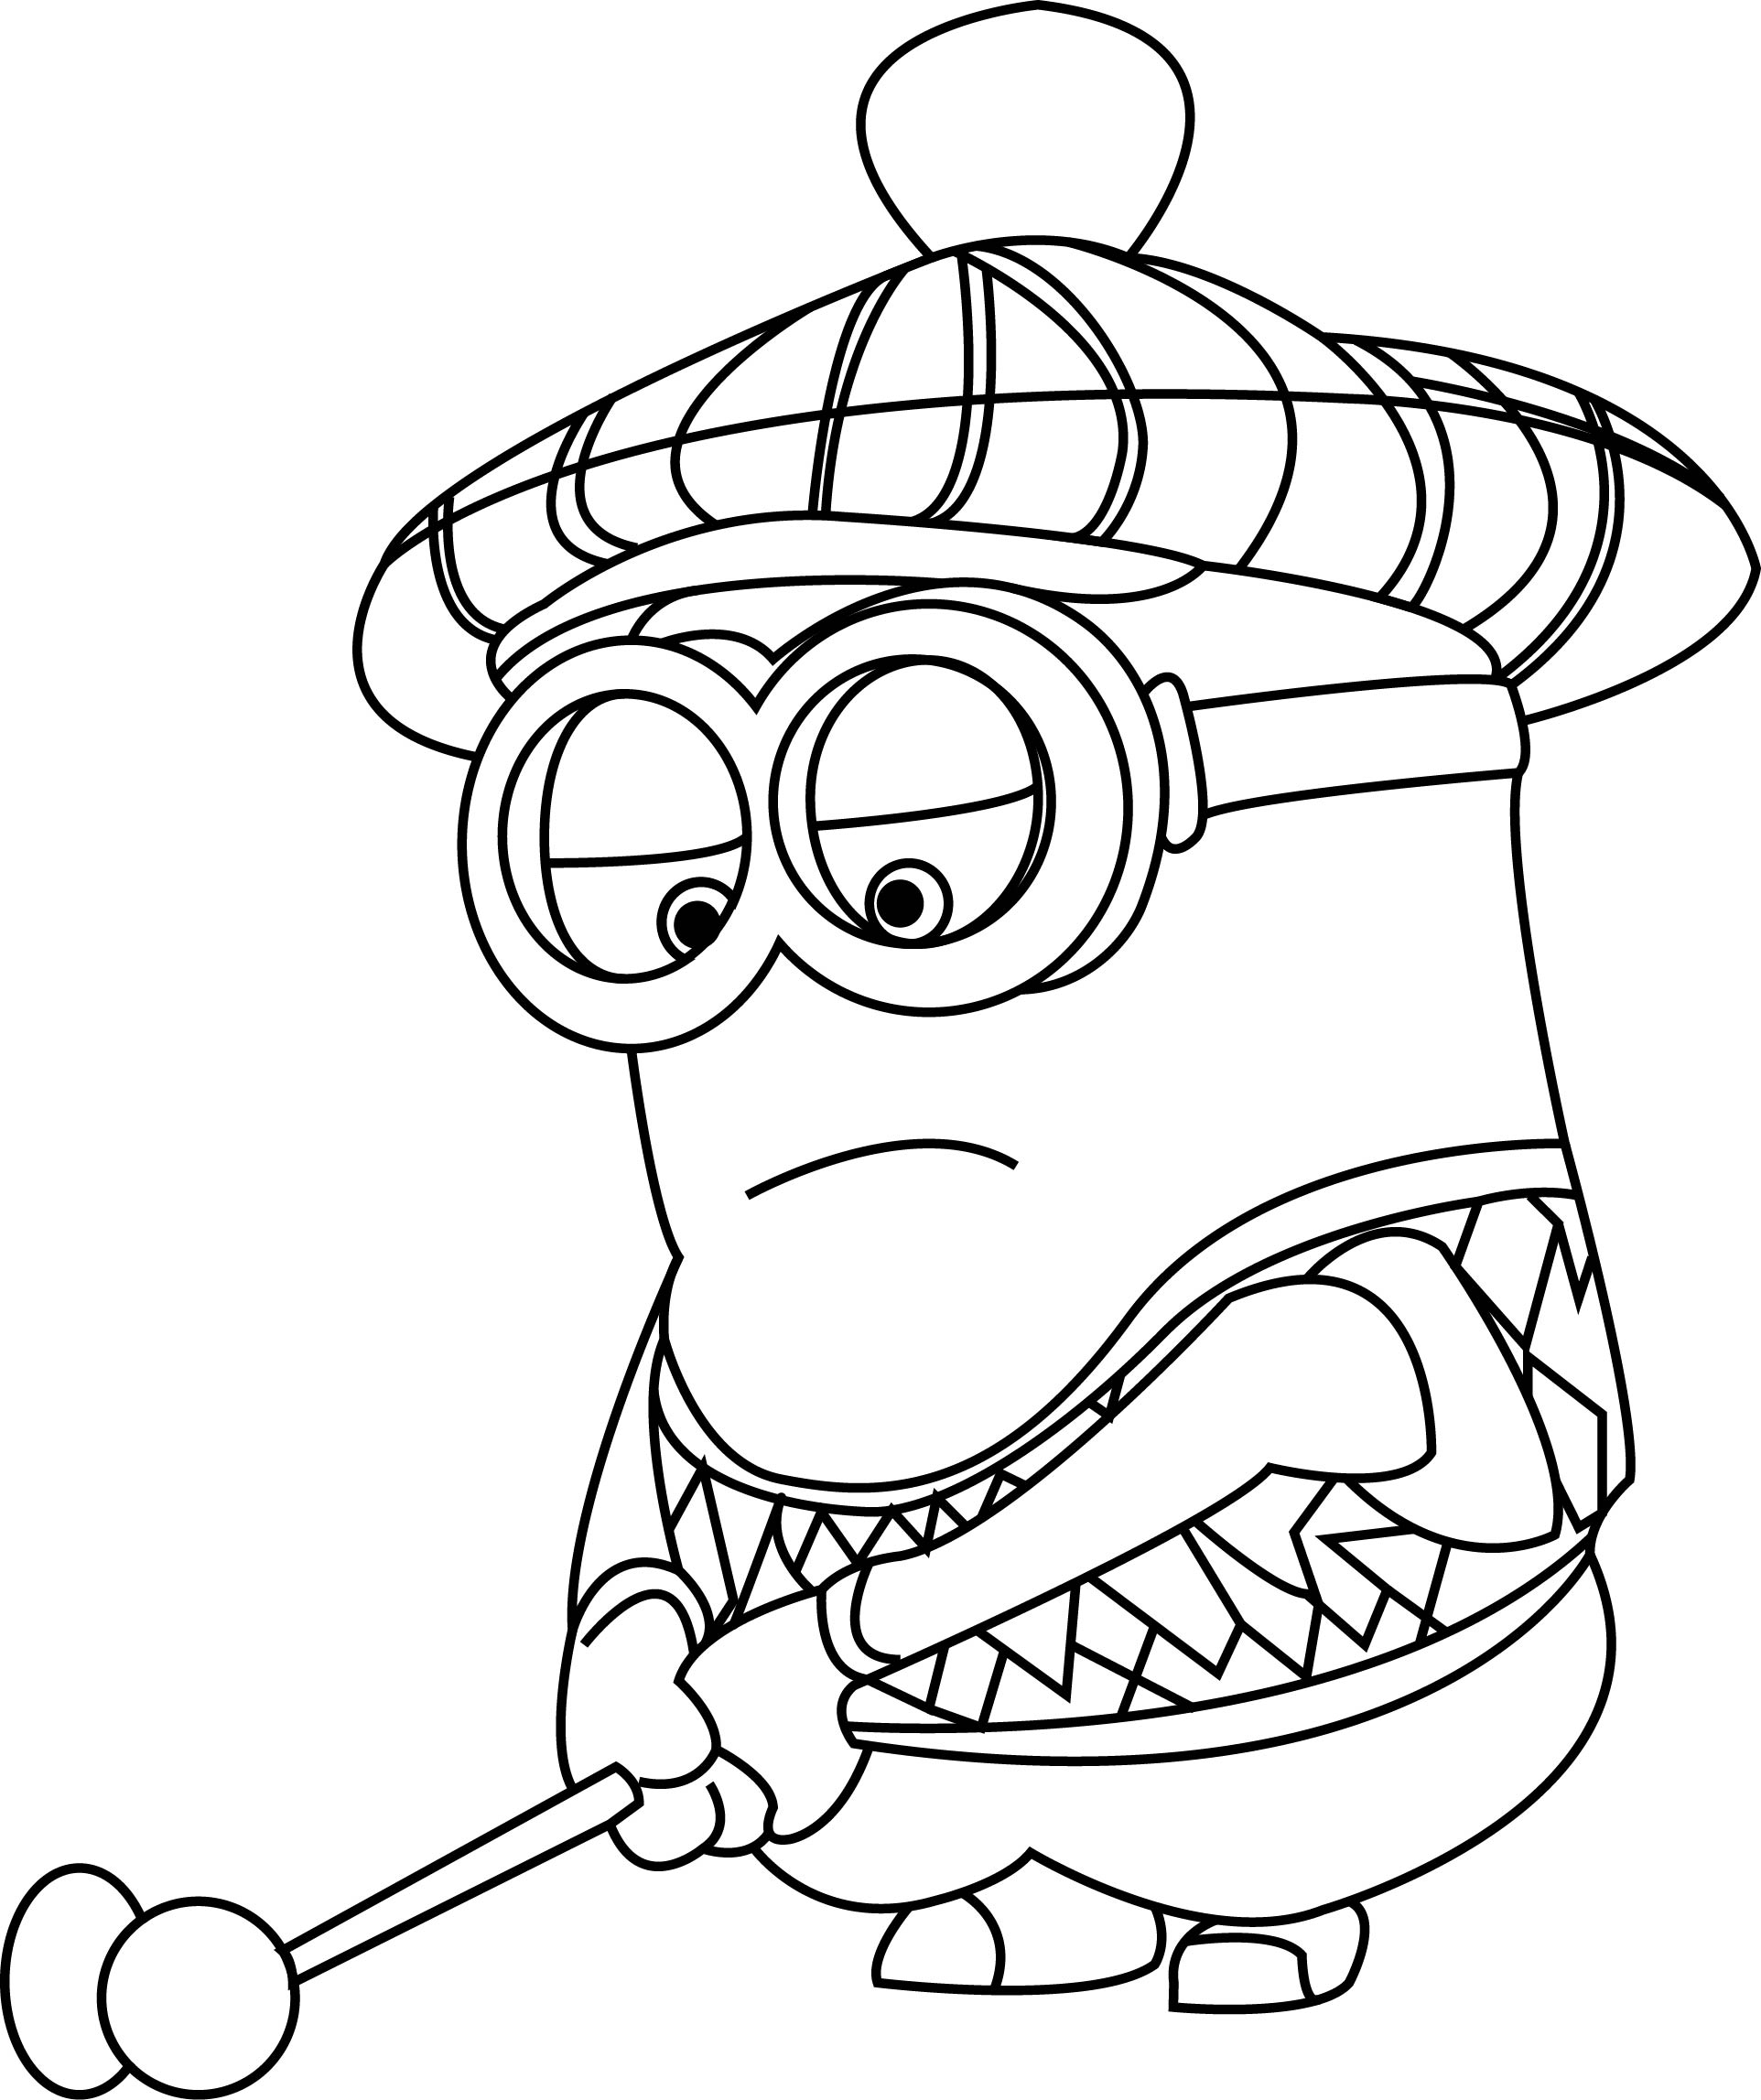 Minion Kevin Playing Golf Coloring Page